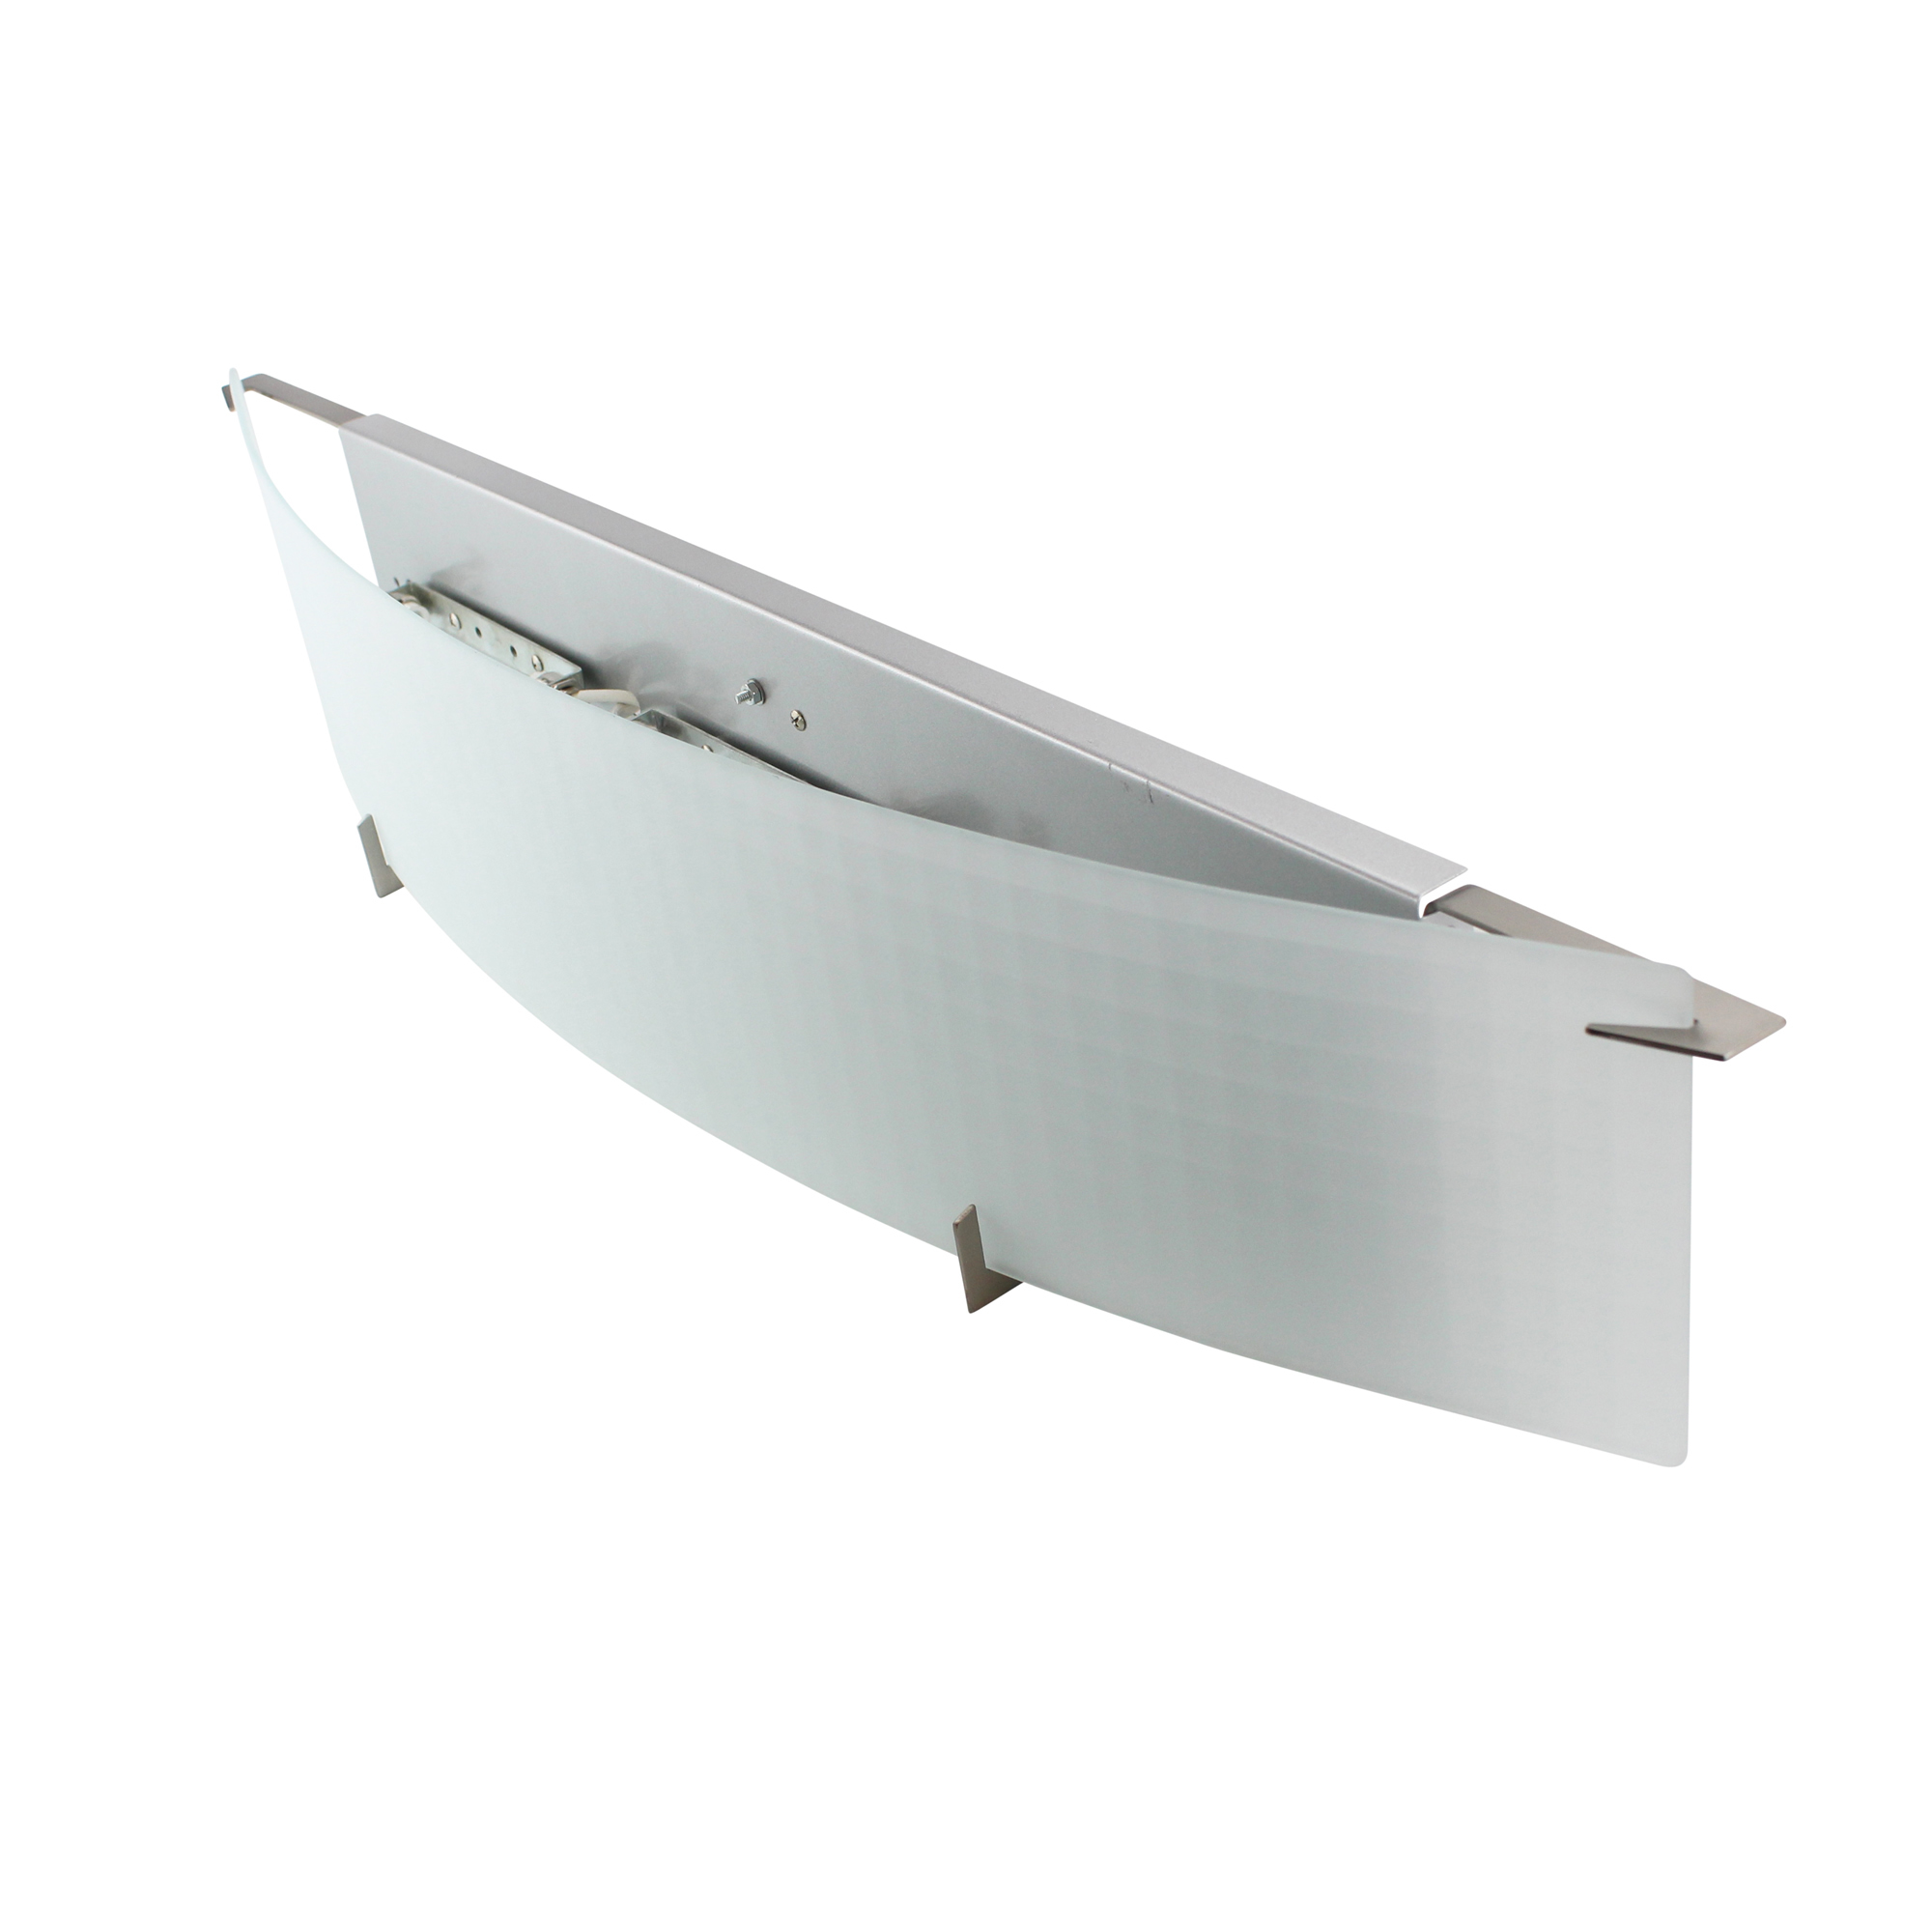 stainless steel bathroom light fixtures premier lighting 103404 bn bathroom vanity light fixture 24262